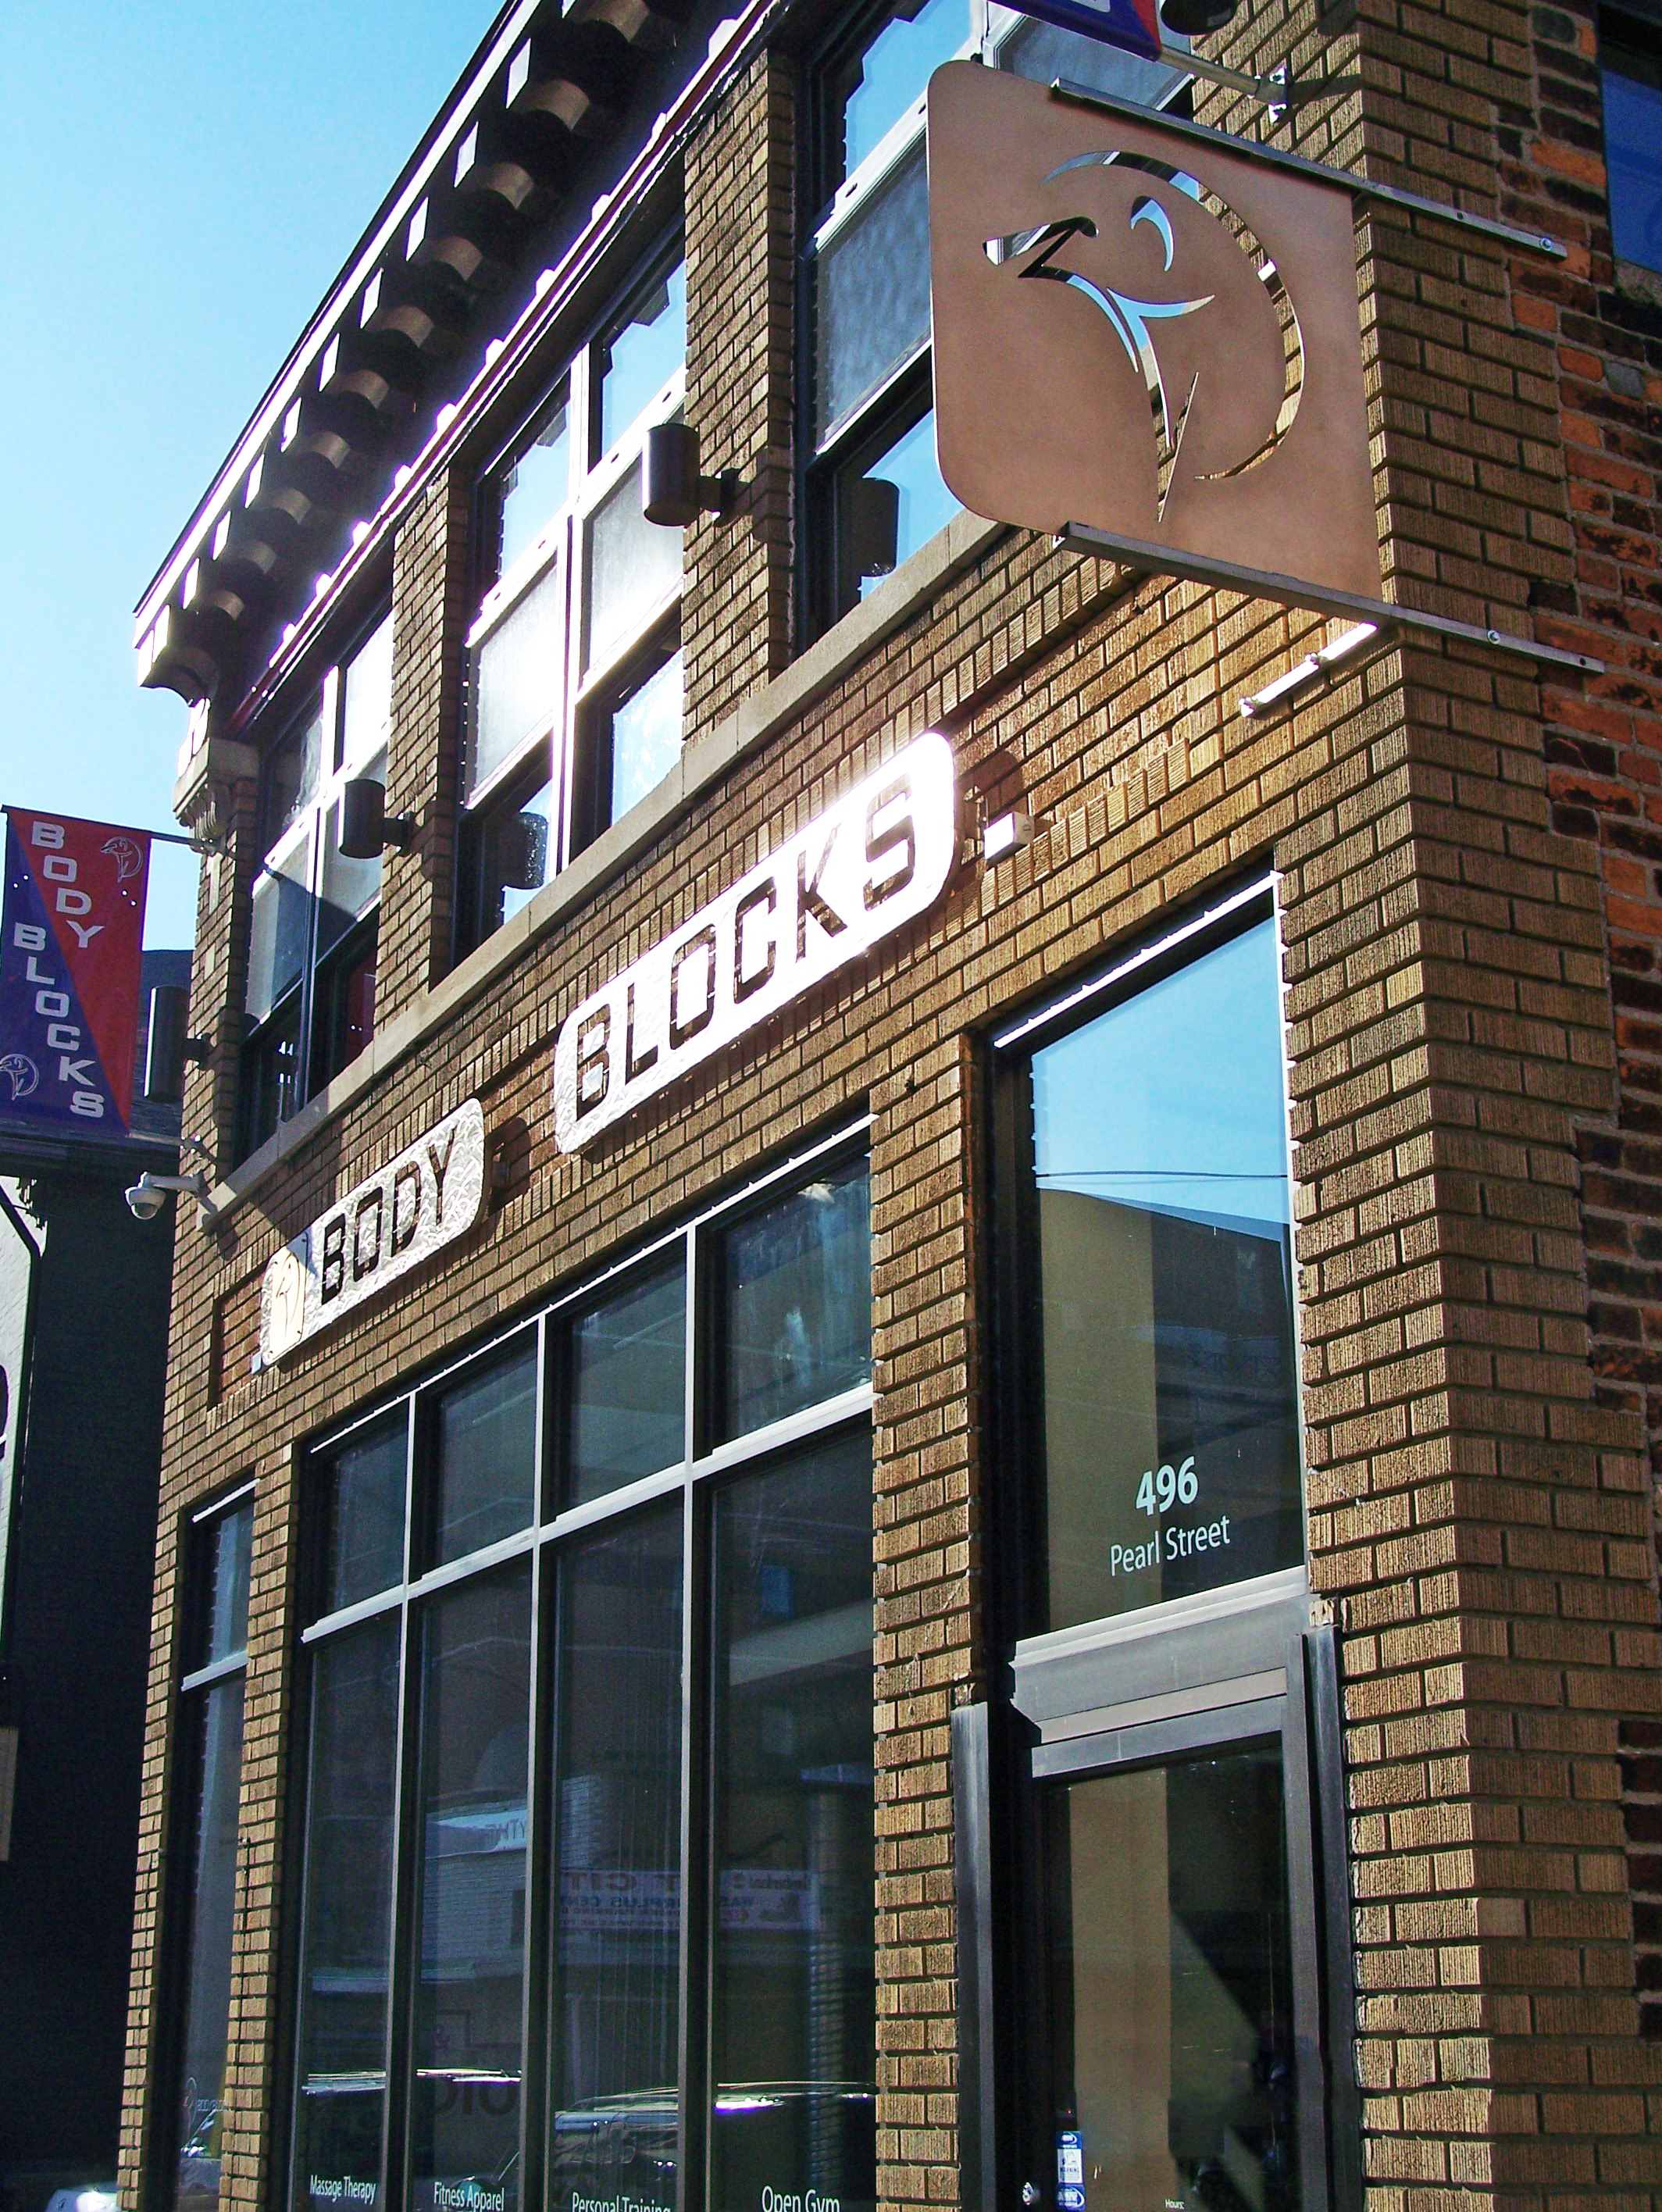 We have added a new location on the 2nd Floor of Body Blocks Fitness in Downtown Buffalo. - Body Blocks is known as one of Buffalo's premier fitness facilities and has been serving clients in Downtown Buffalo for more than 30 years. Clients of Body Blocks understand the importance of living a healthy lifestyle and investing in their health and well-being which makes this an ideal location for Stretch. Private 30-minute Stretch and Pilates Sessions are now available at Body Block by appointment only. We will also be adding small group classes at this location in the New Year.To learn more or to schedule your 30 minute Stretch and/or Pilates Session at Body Blocks, call today!